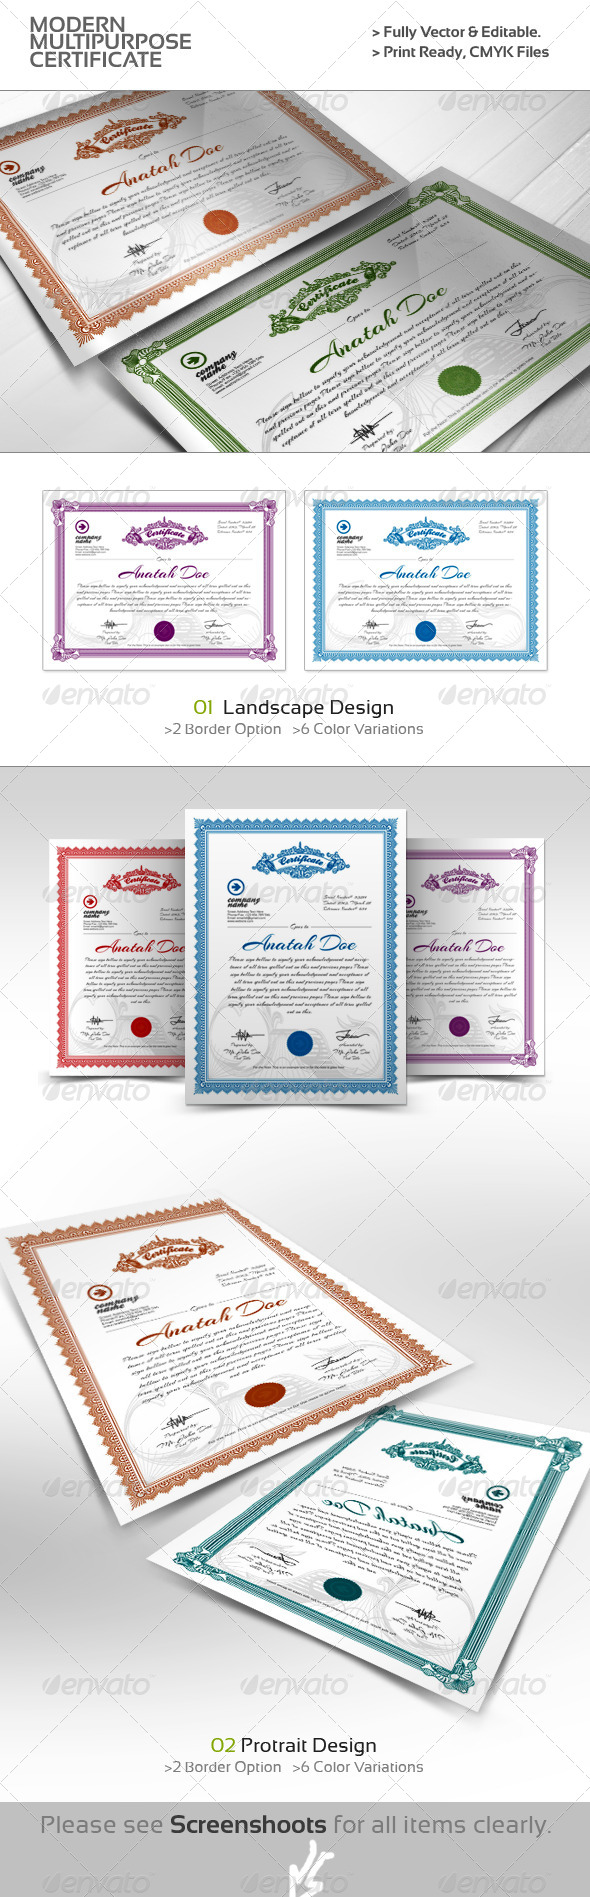 GraphicRiver Modern Multipurpose Certificates 4409262